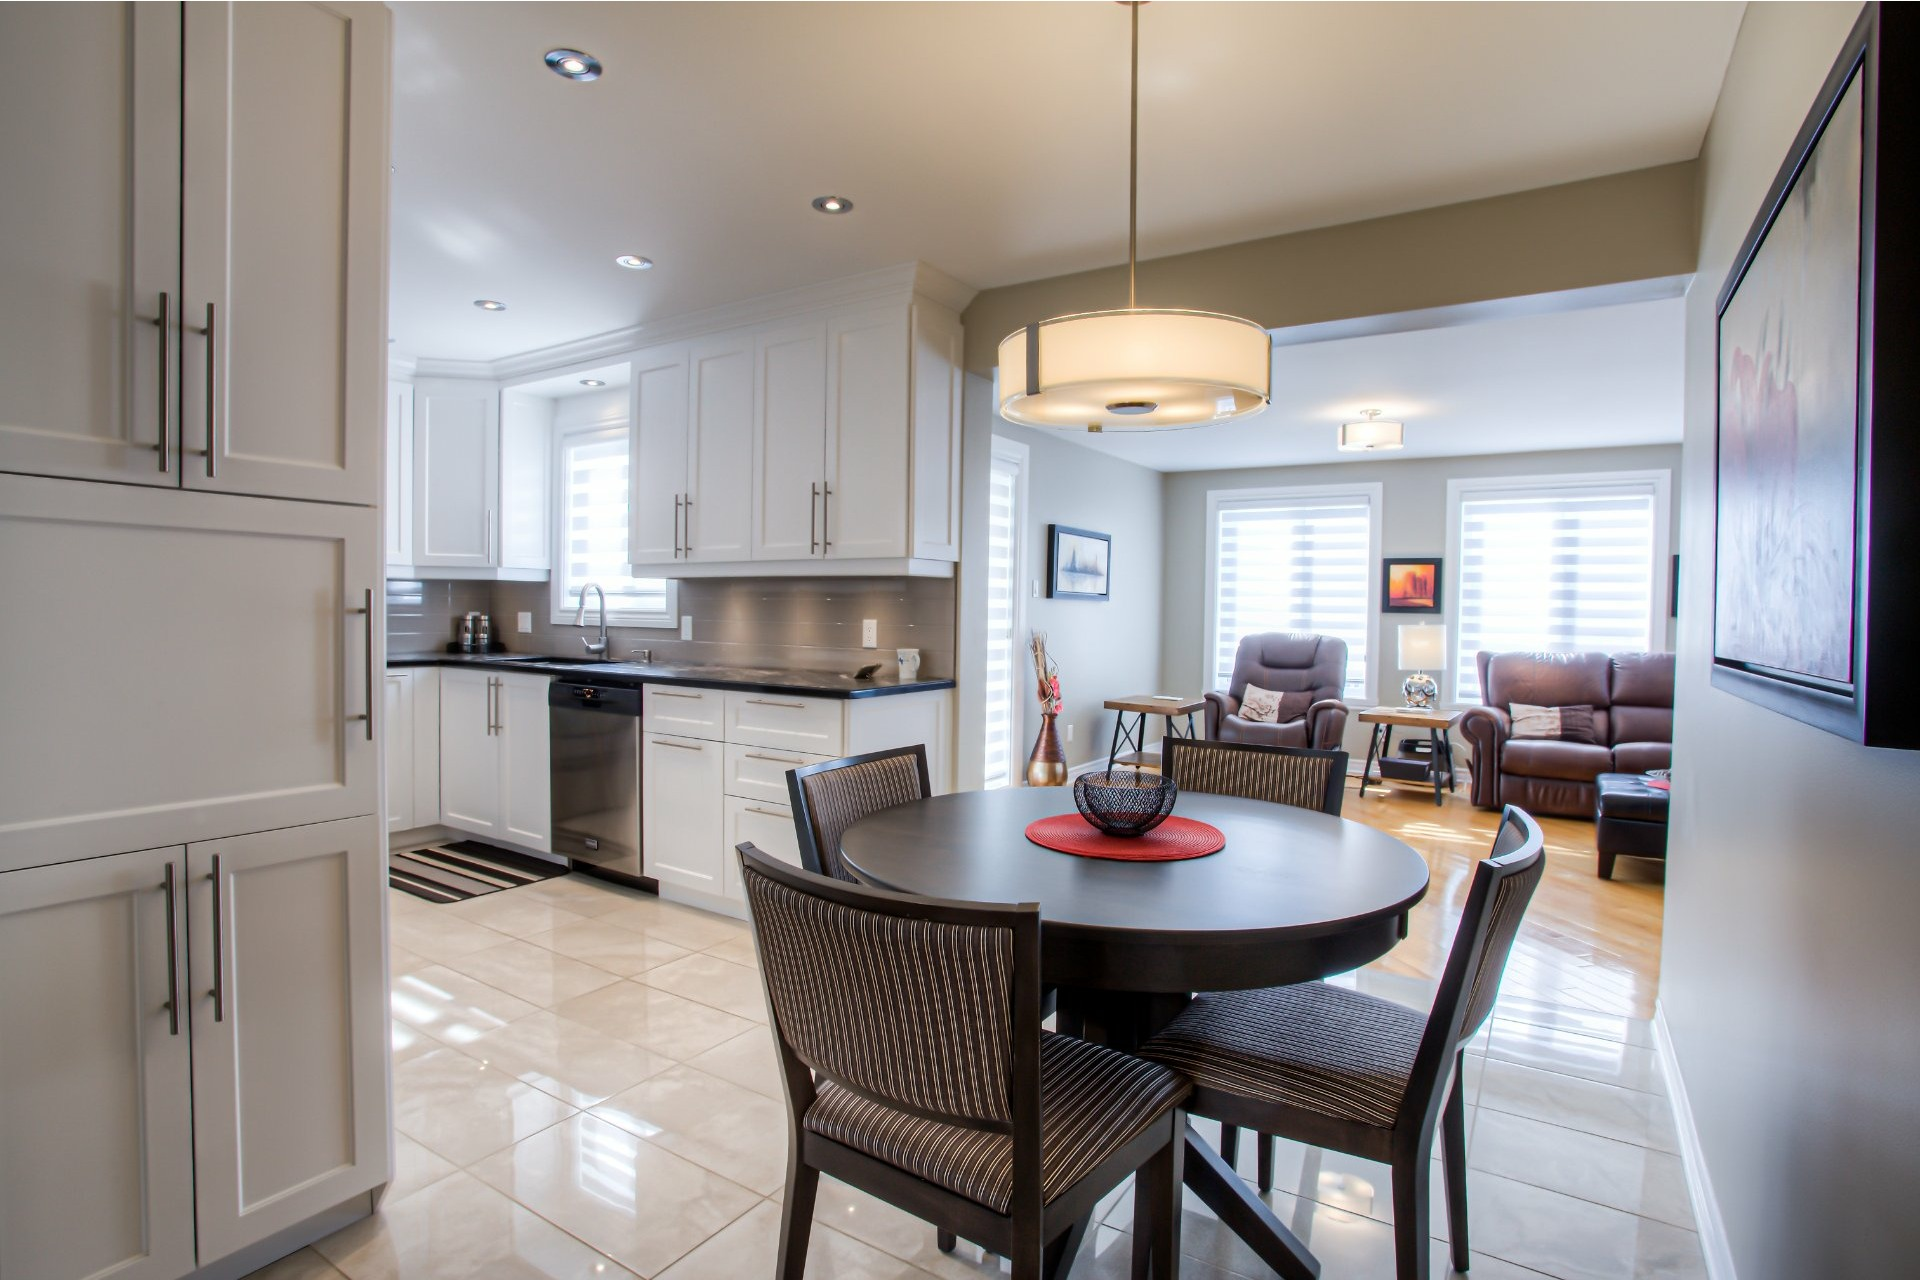 image 5 - House For sale Vaudreuil-Dorion - 11 rooms